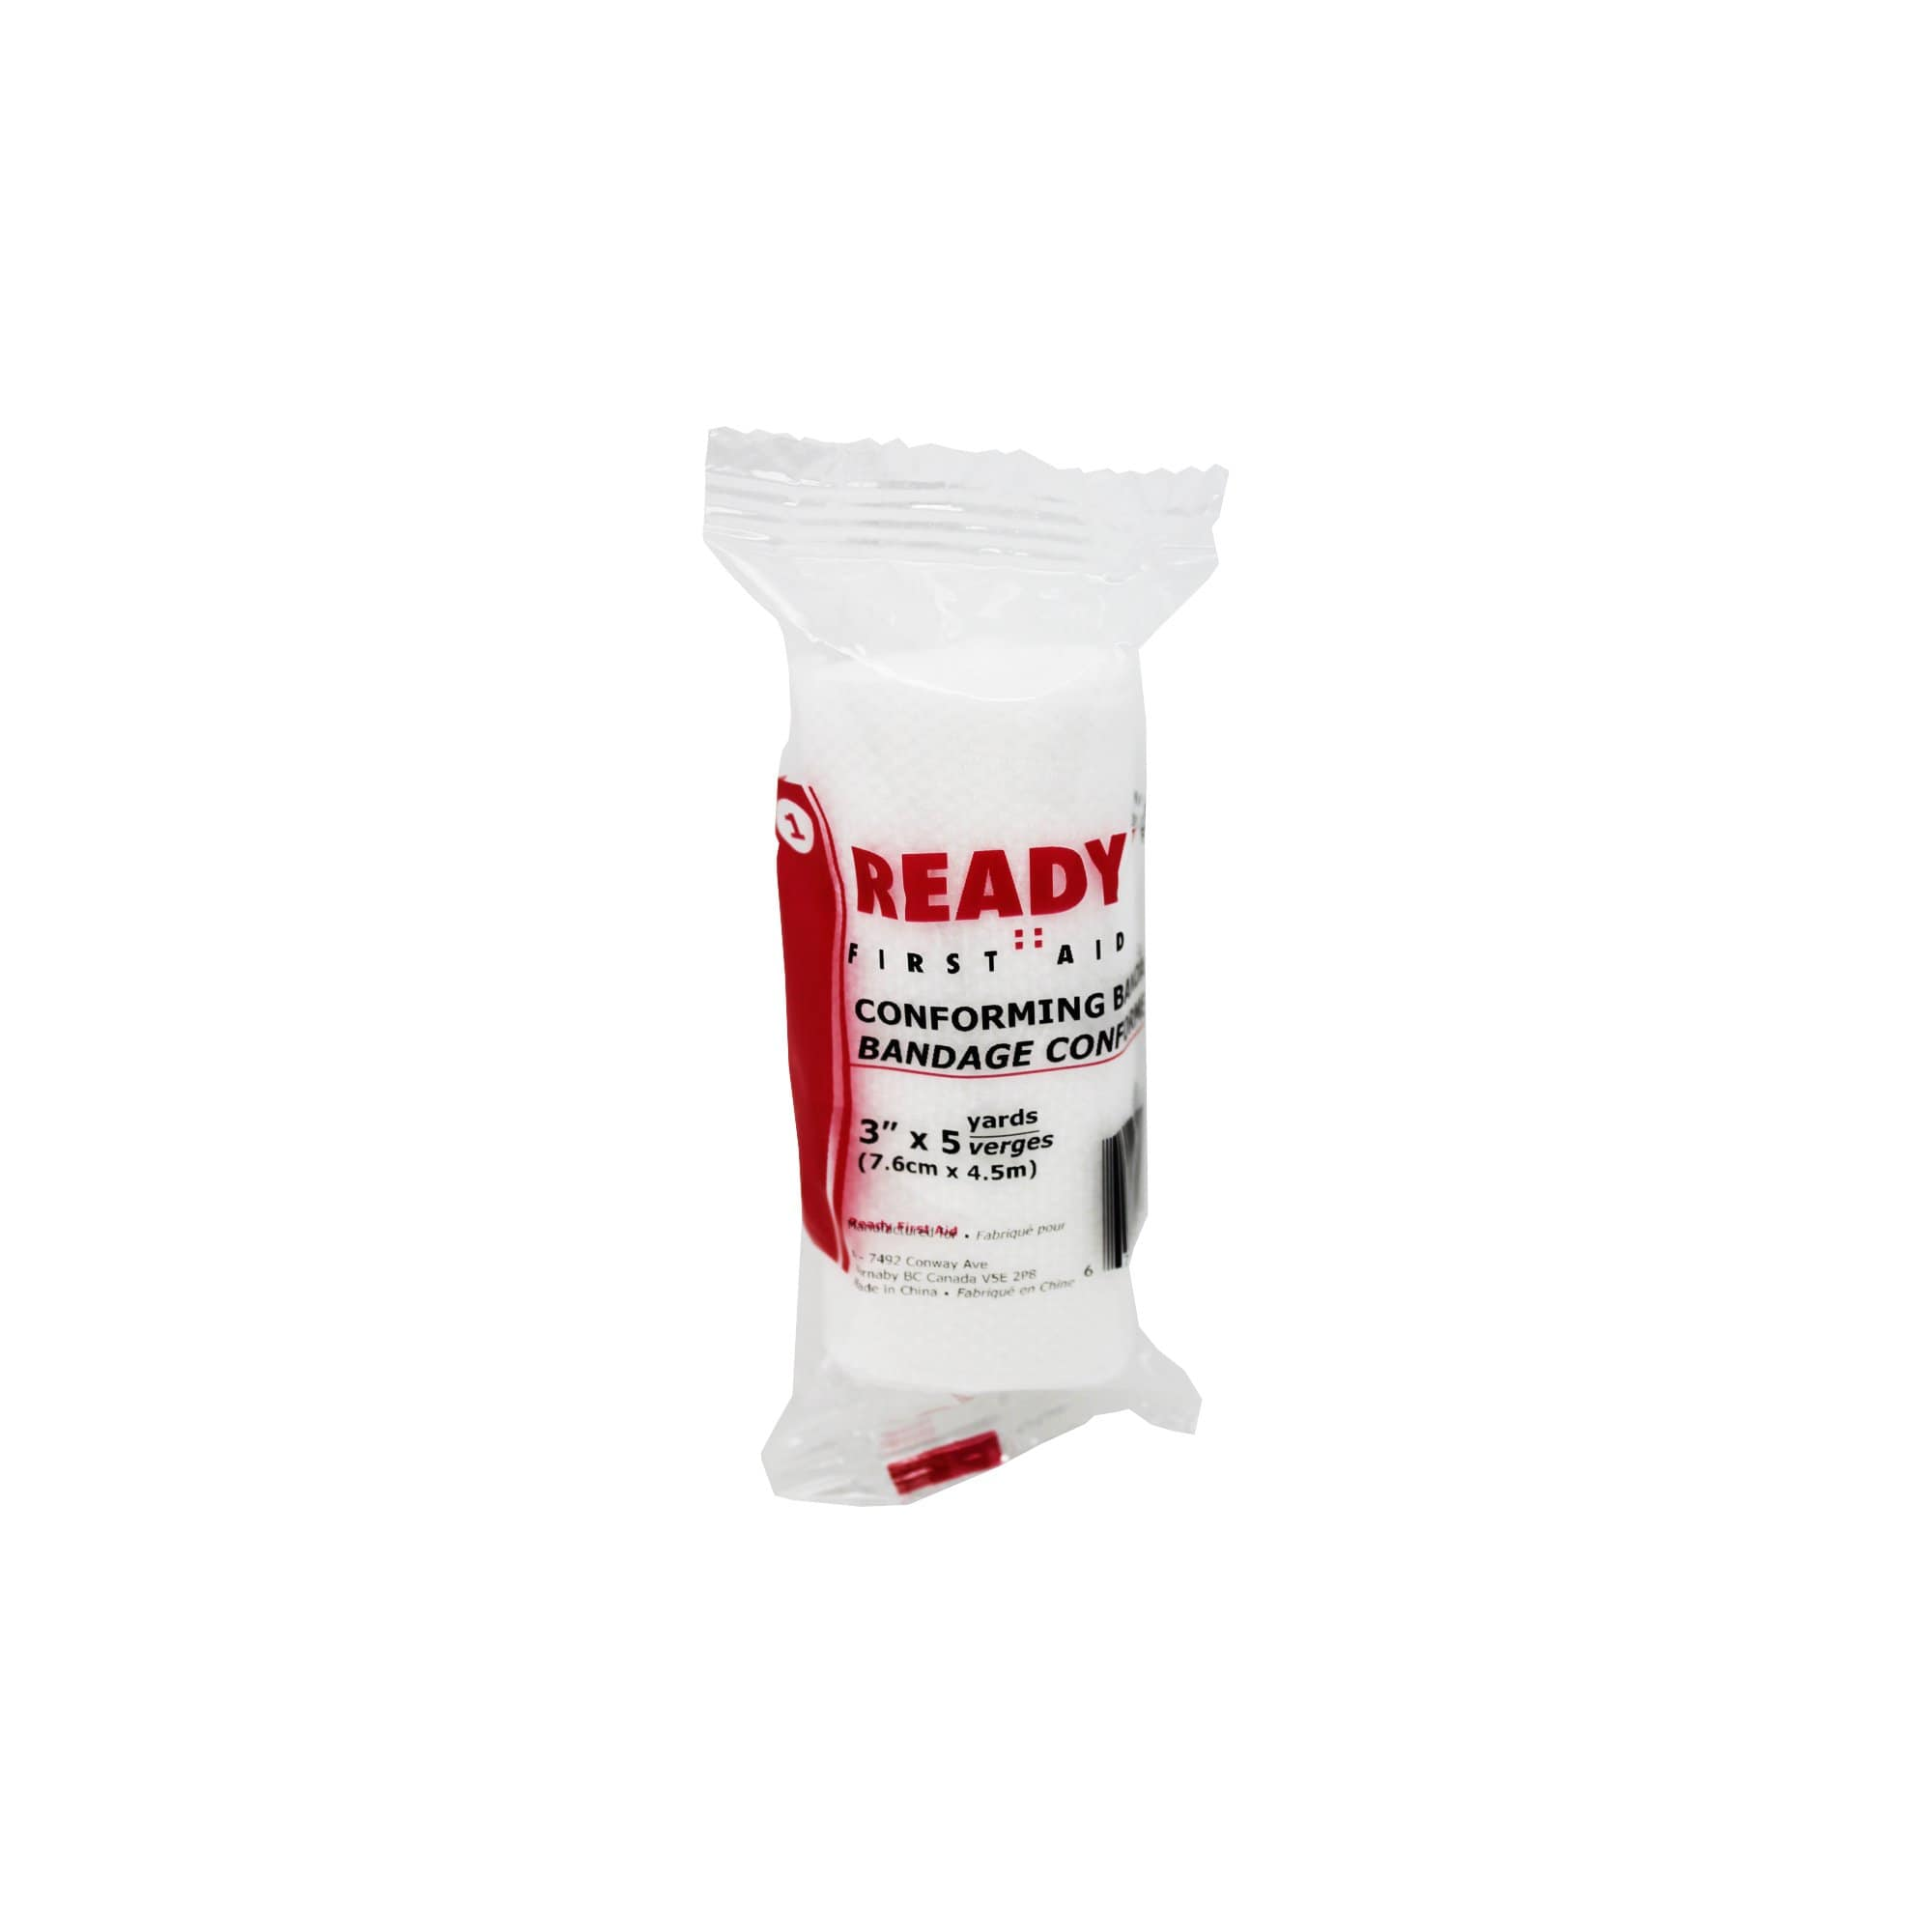 "Conforming Stretch Bandage (3""), 7.6 cm x 4.5 m - Ready First Aid"